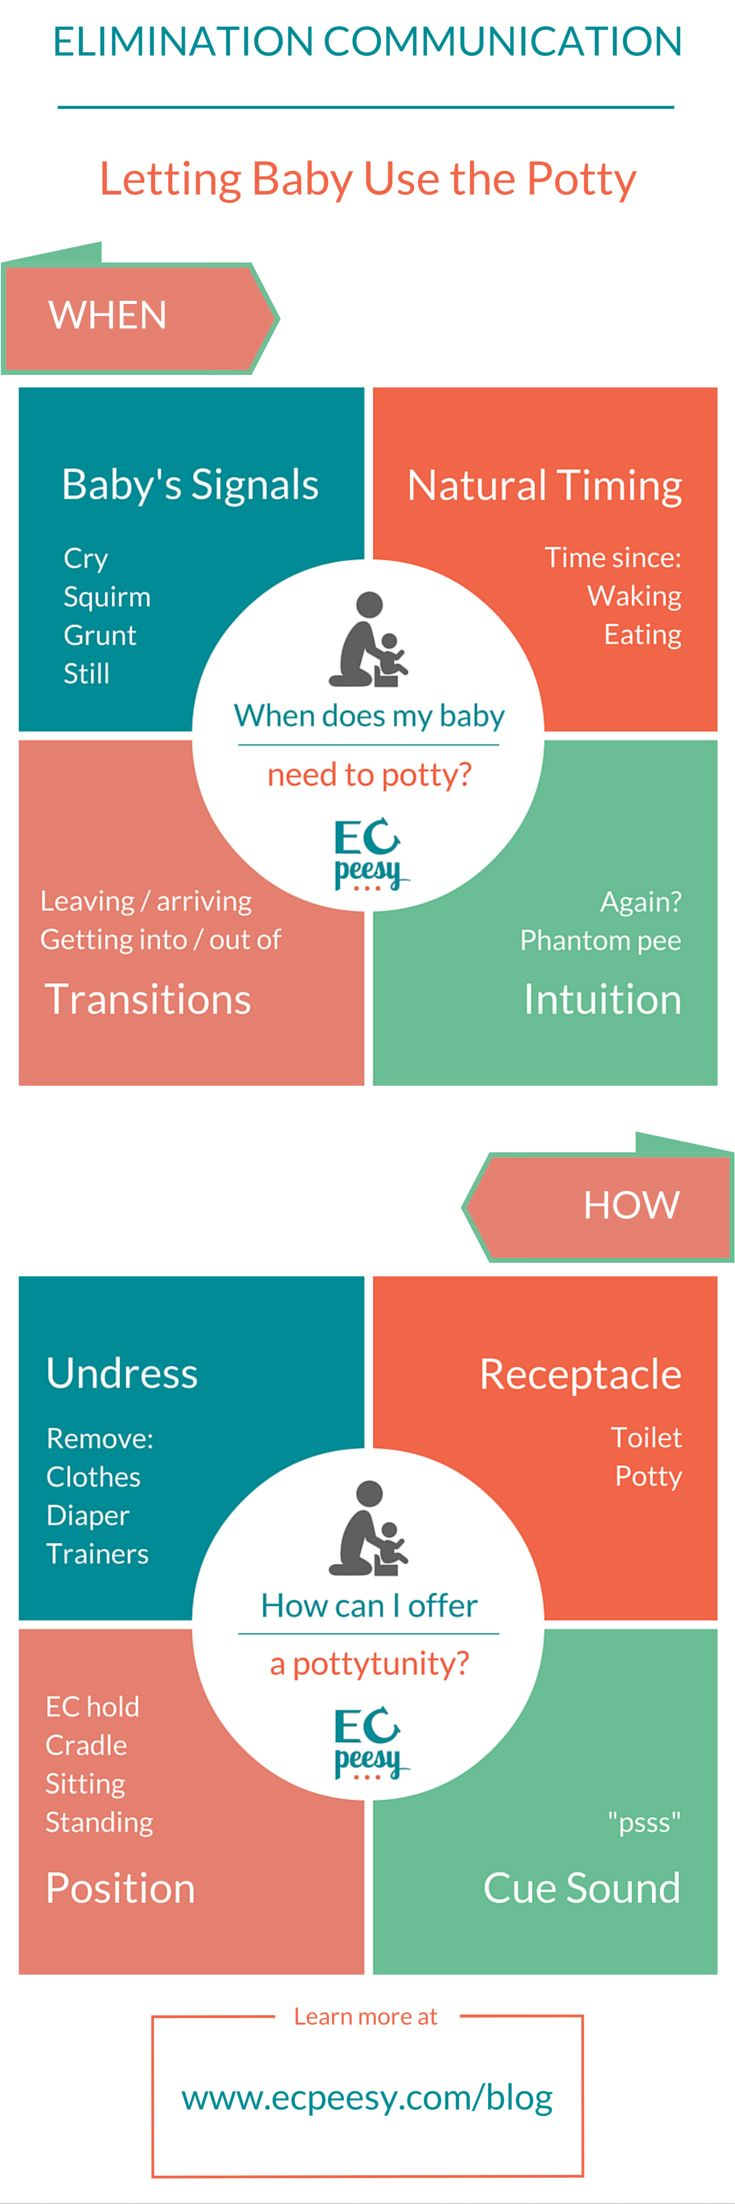 How to Start Elimination Communication and let your baby use the potty. When does my baby need to potty? How can I offer a pottytunity? #ecpeesy #eliminationcommunication #infantpottytraining